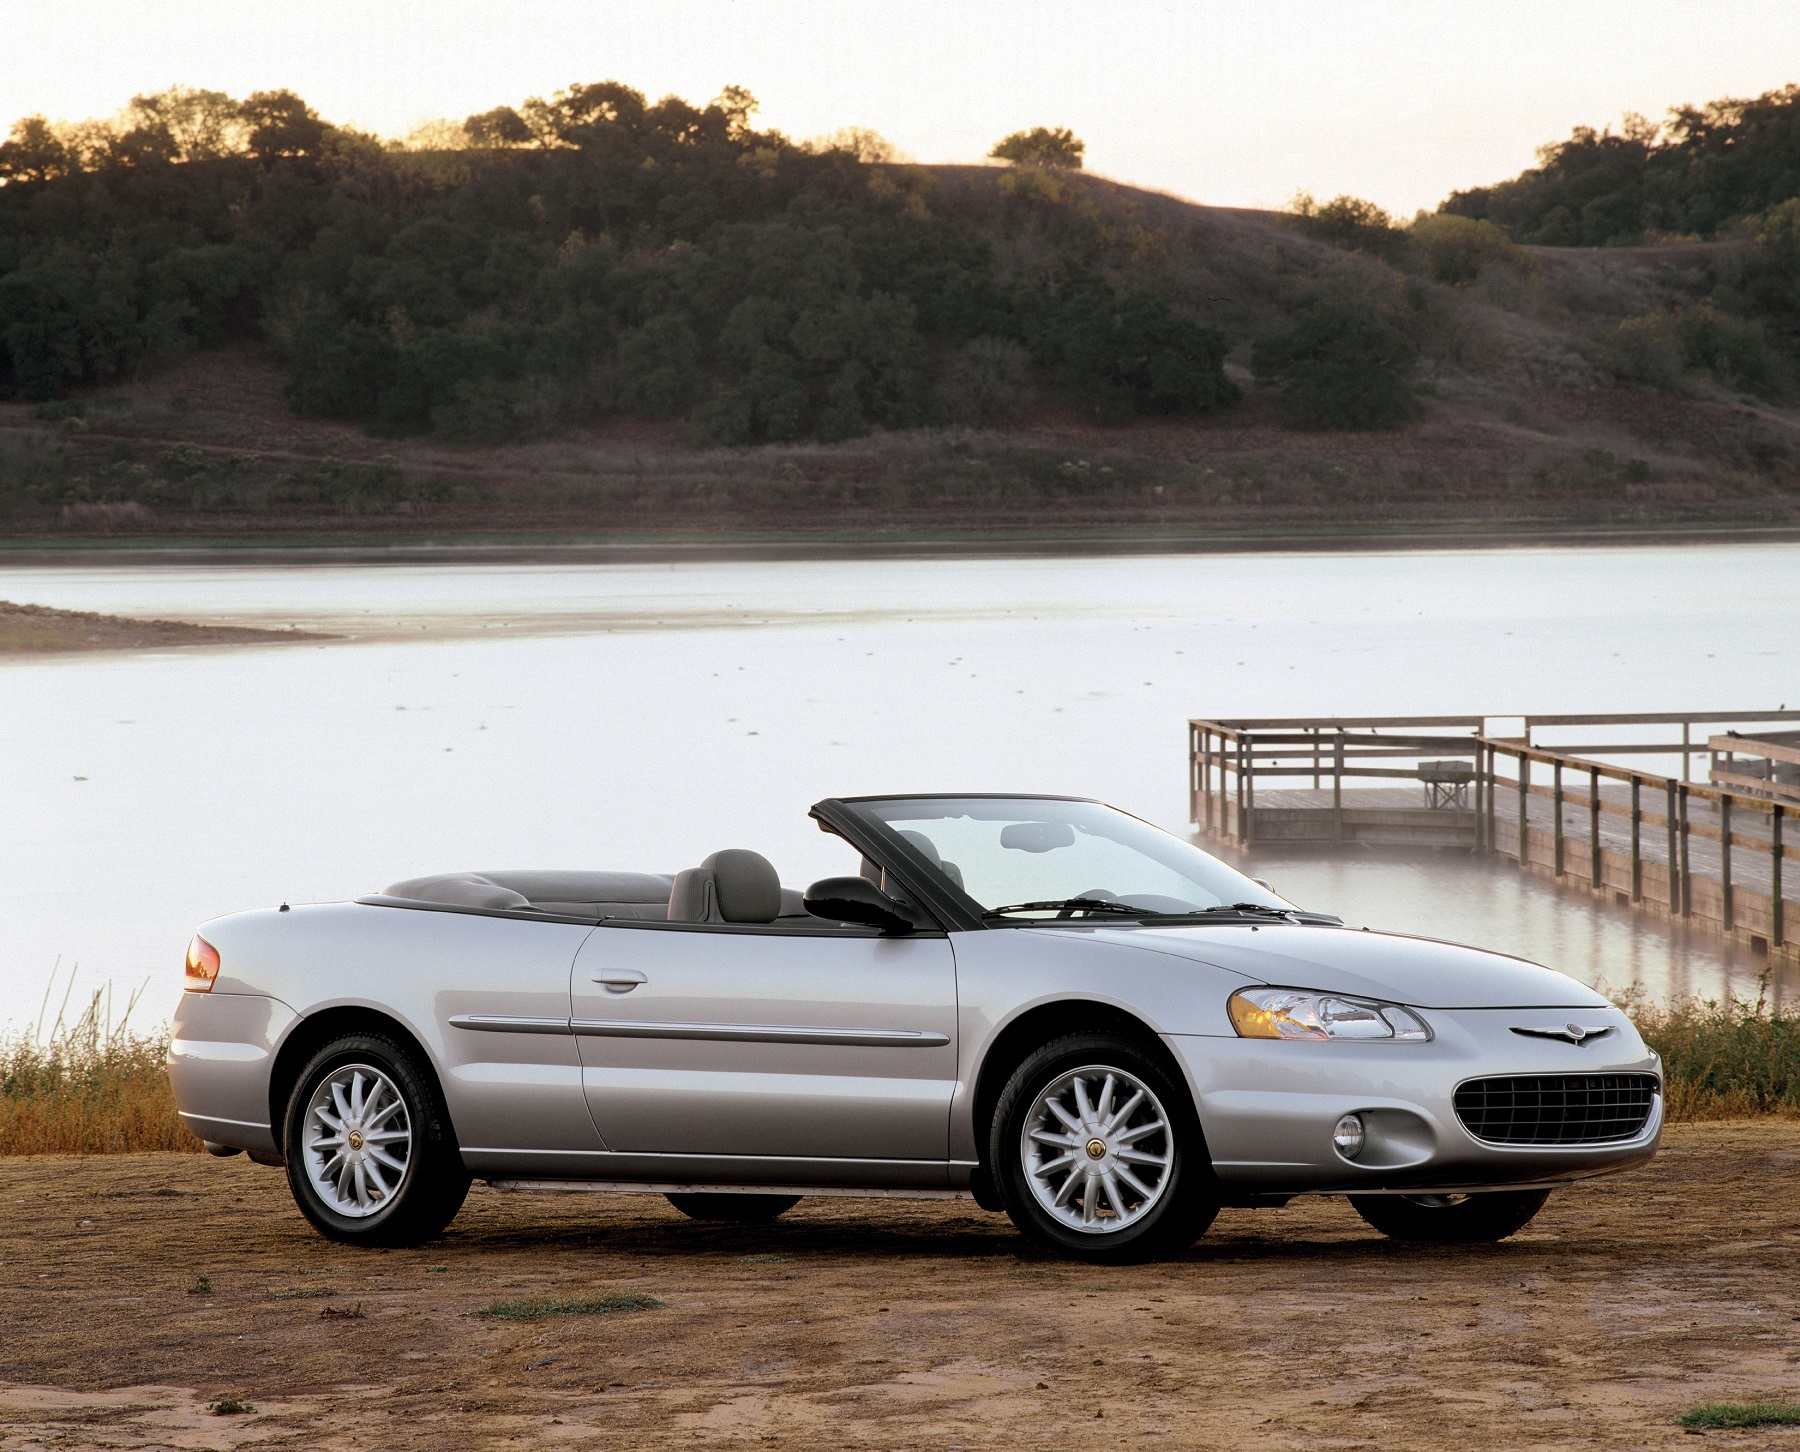 Manufacturer photo: 2002 Chrysler Sebring convertible